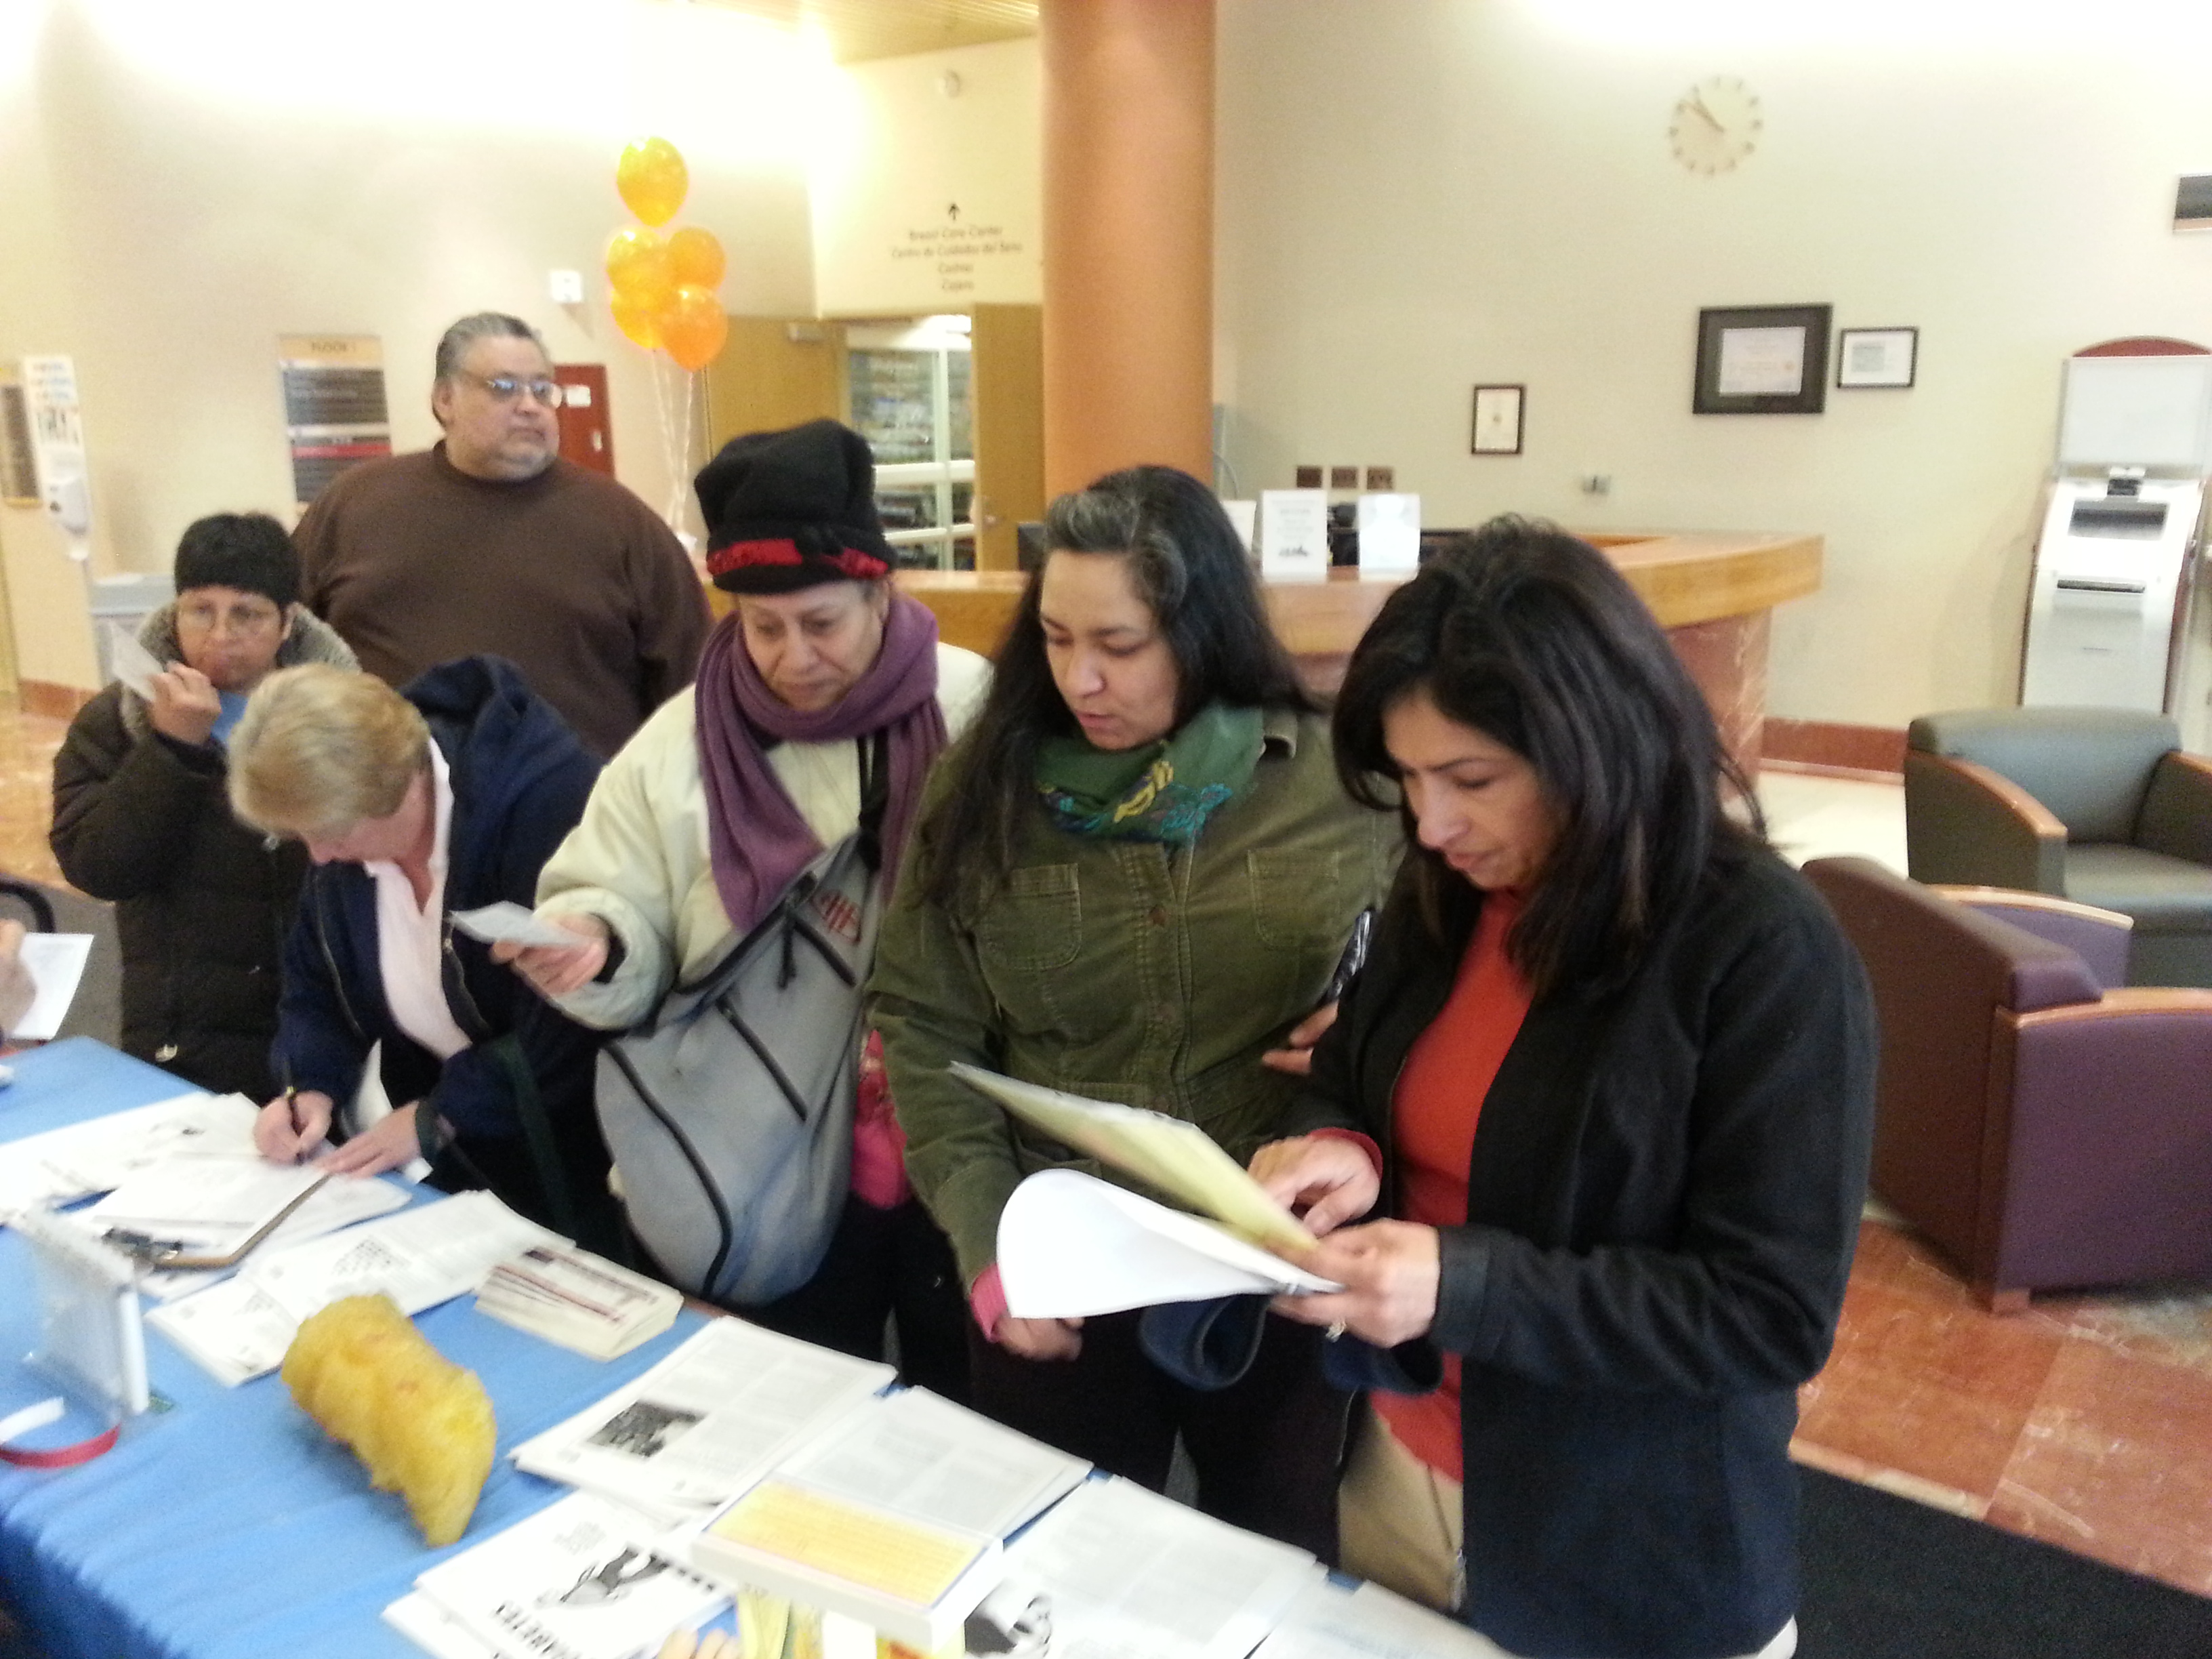 Representative Hernandez hosts free legal clinic on immigration and other legal issues